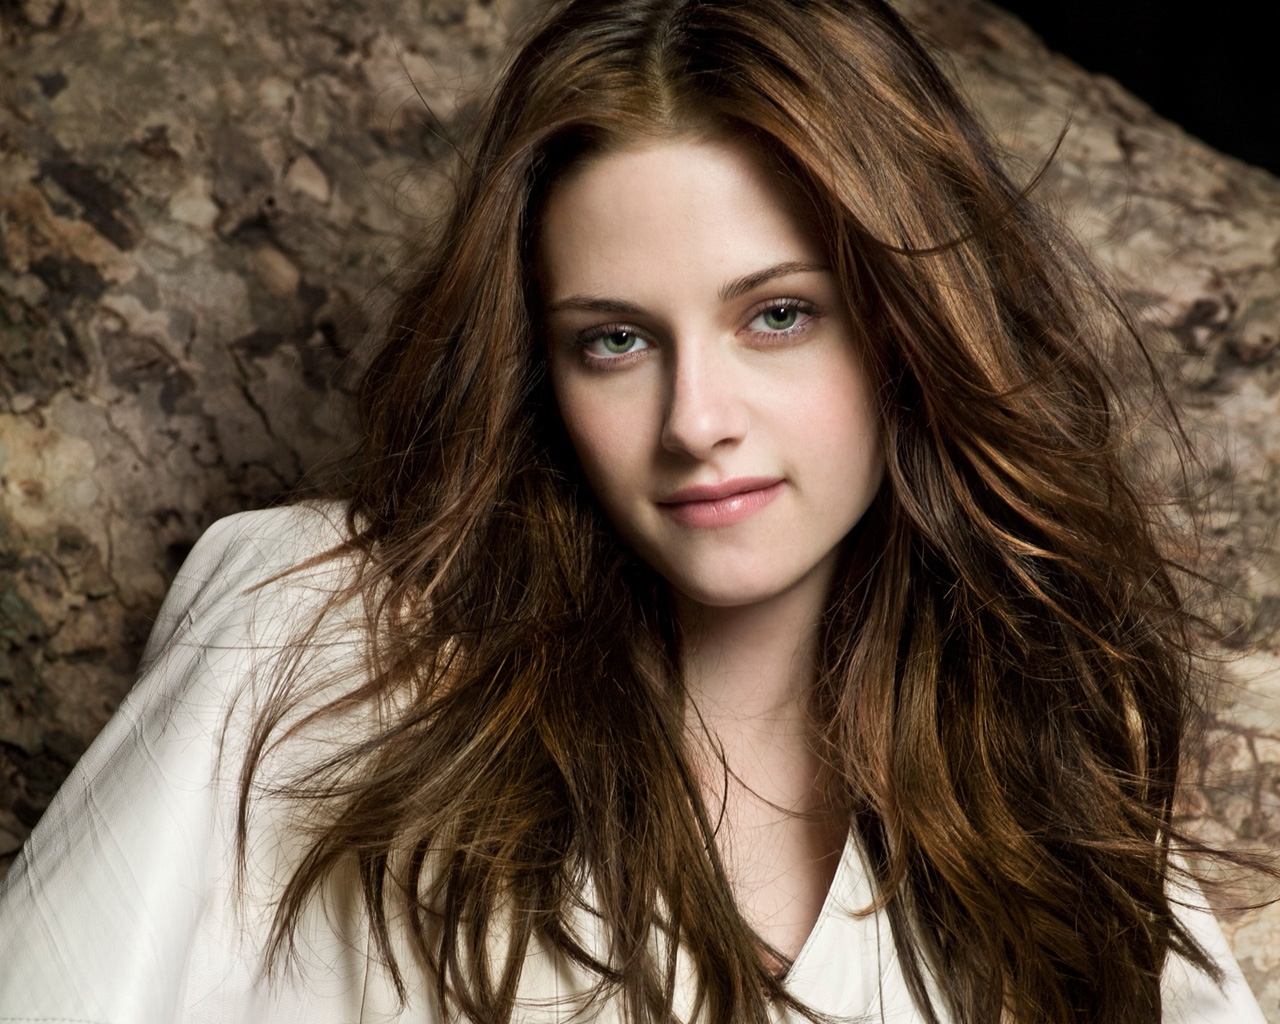 Kristen Stewart Twilight Girl 176.97 Kb